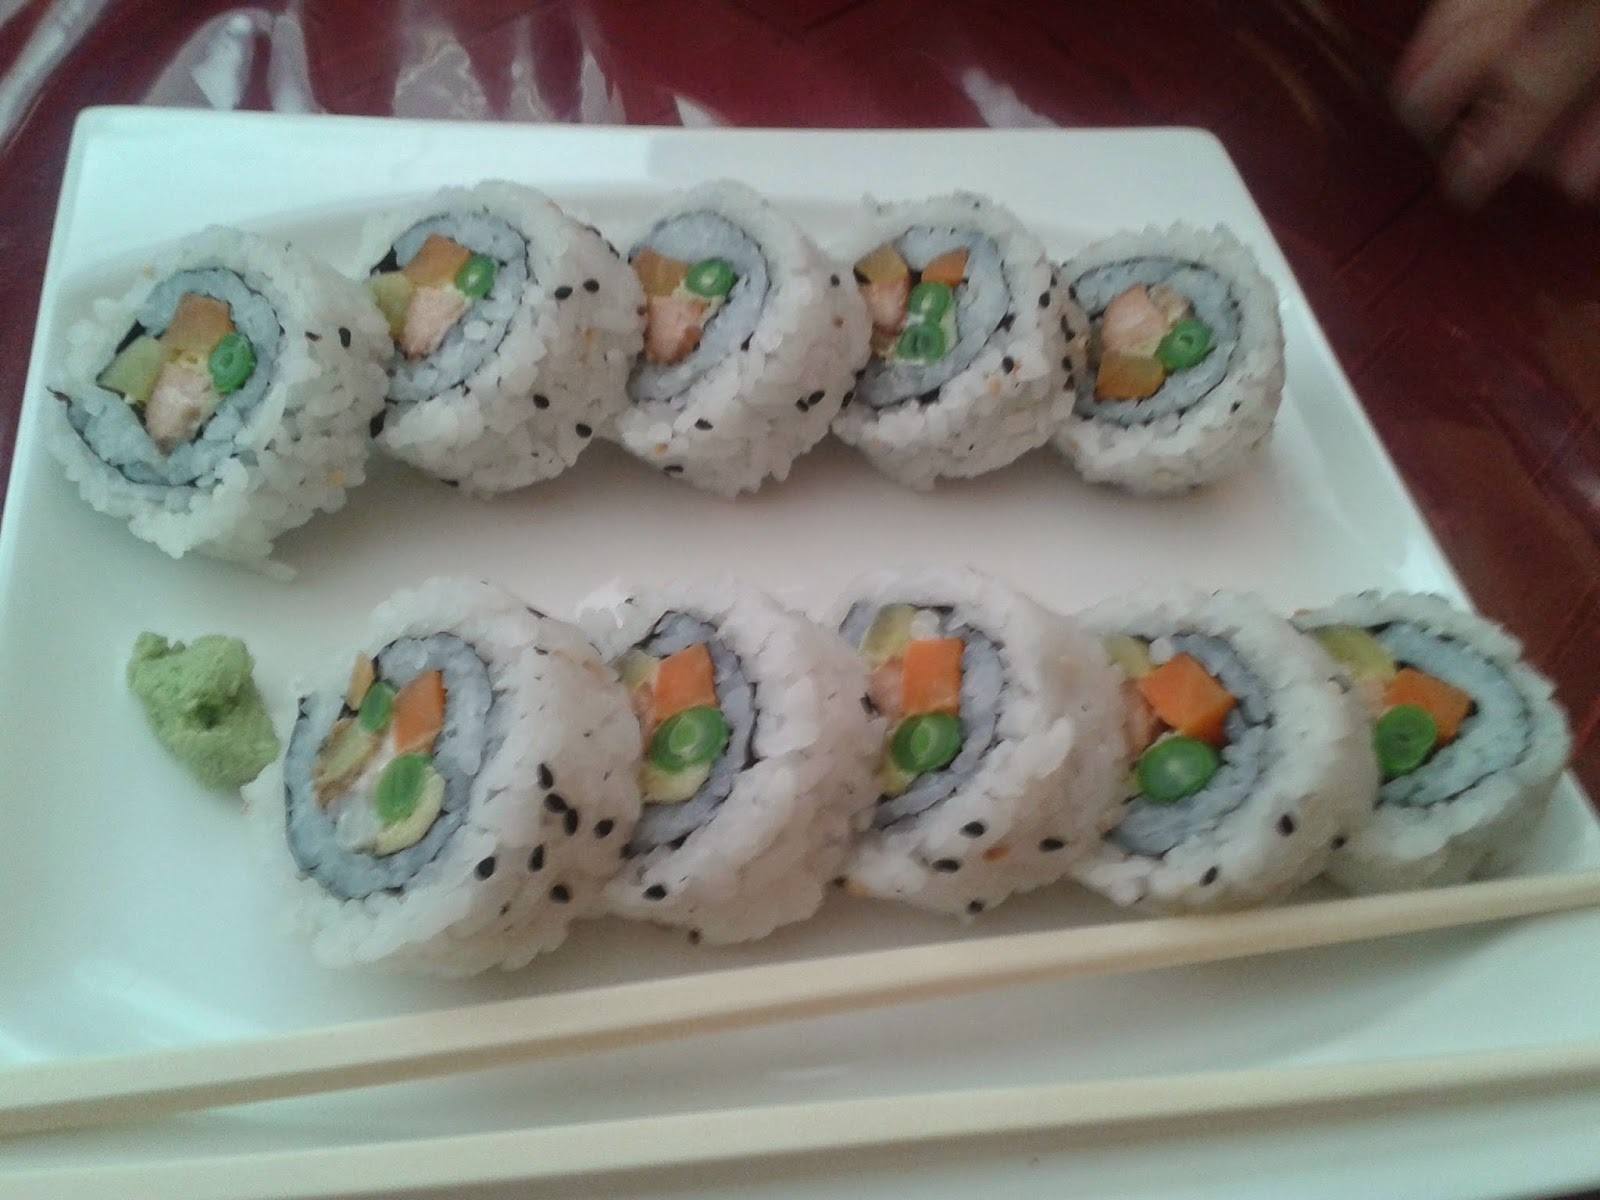 Vegetarian Sushi - Meatless for a Day